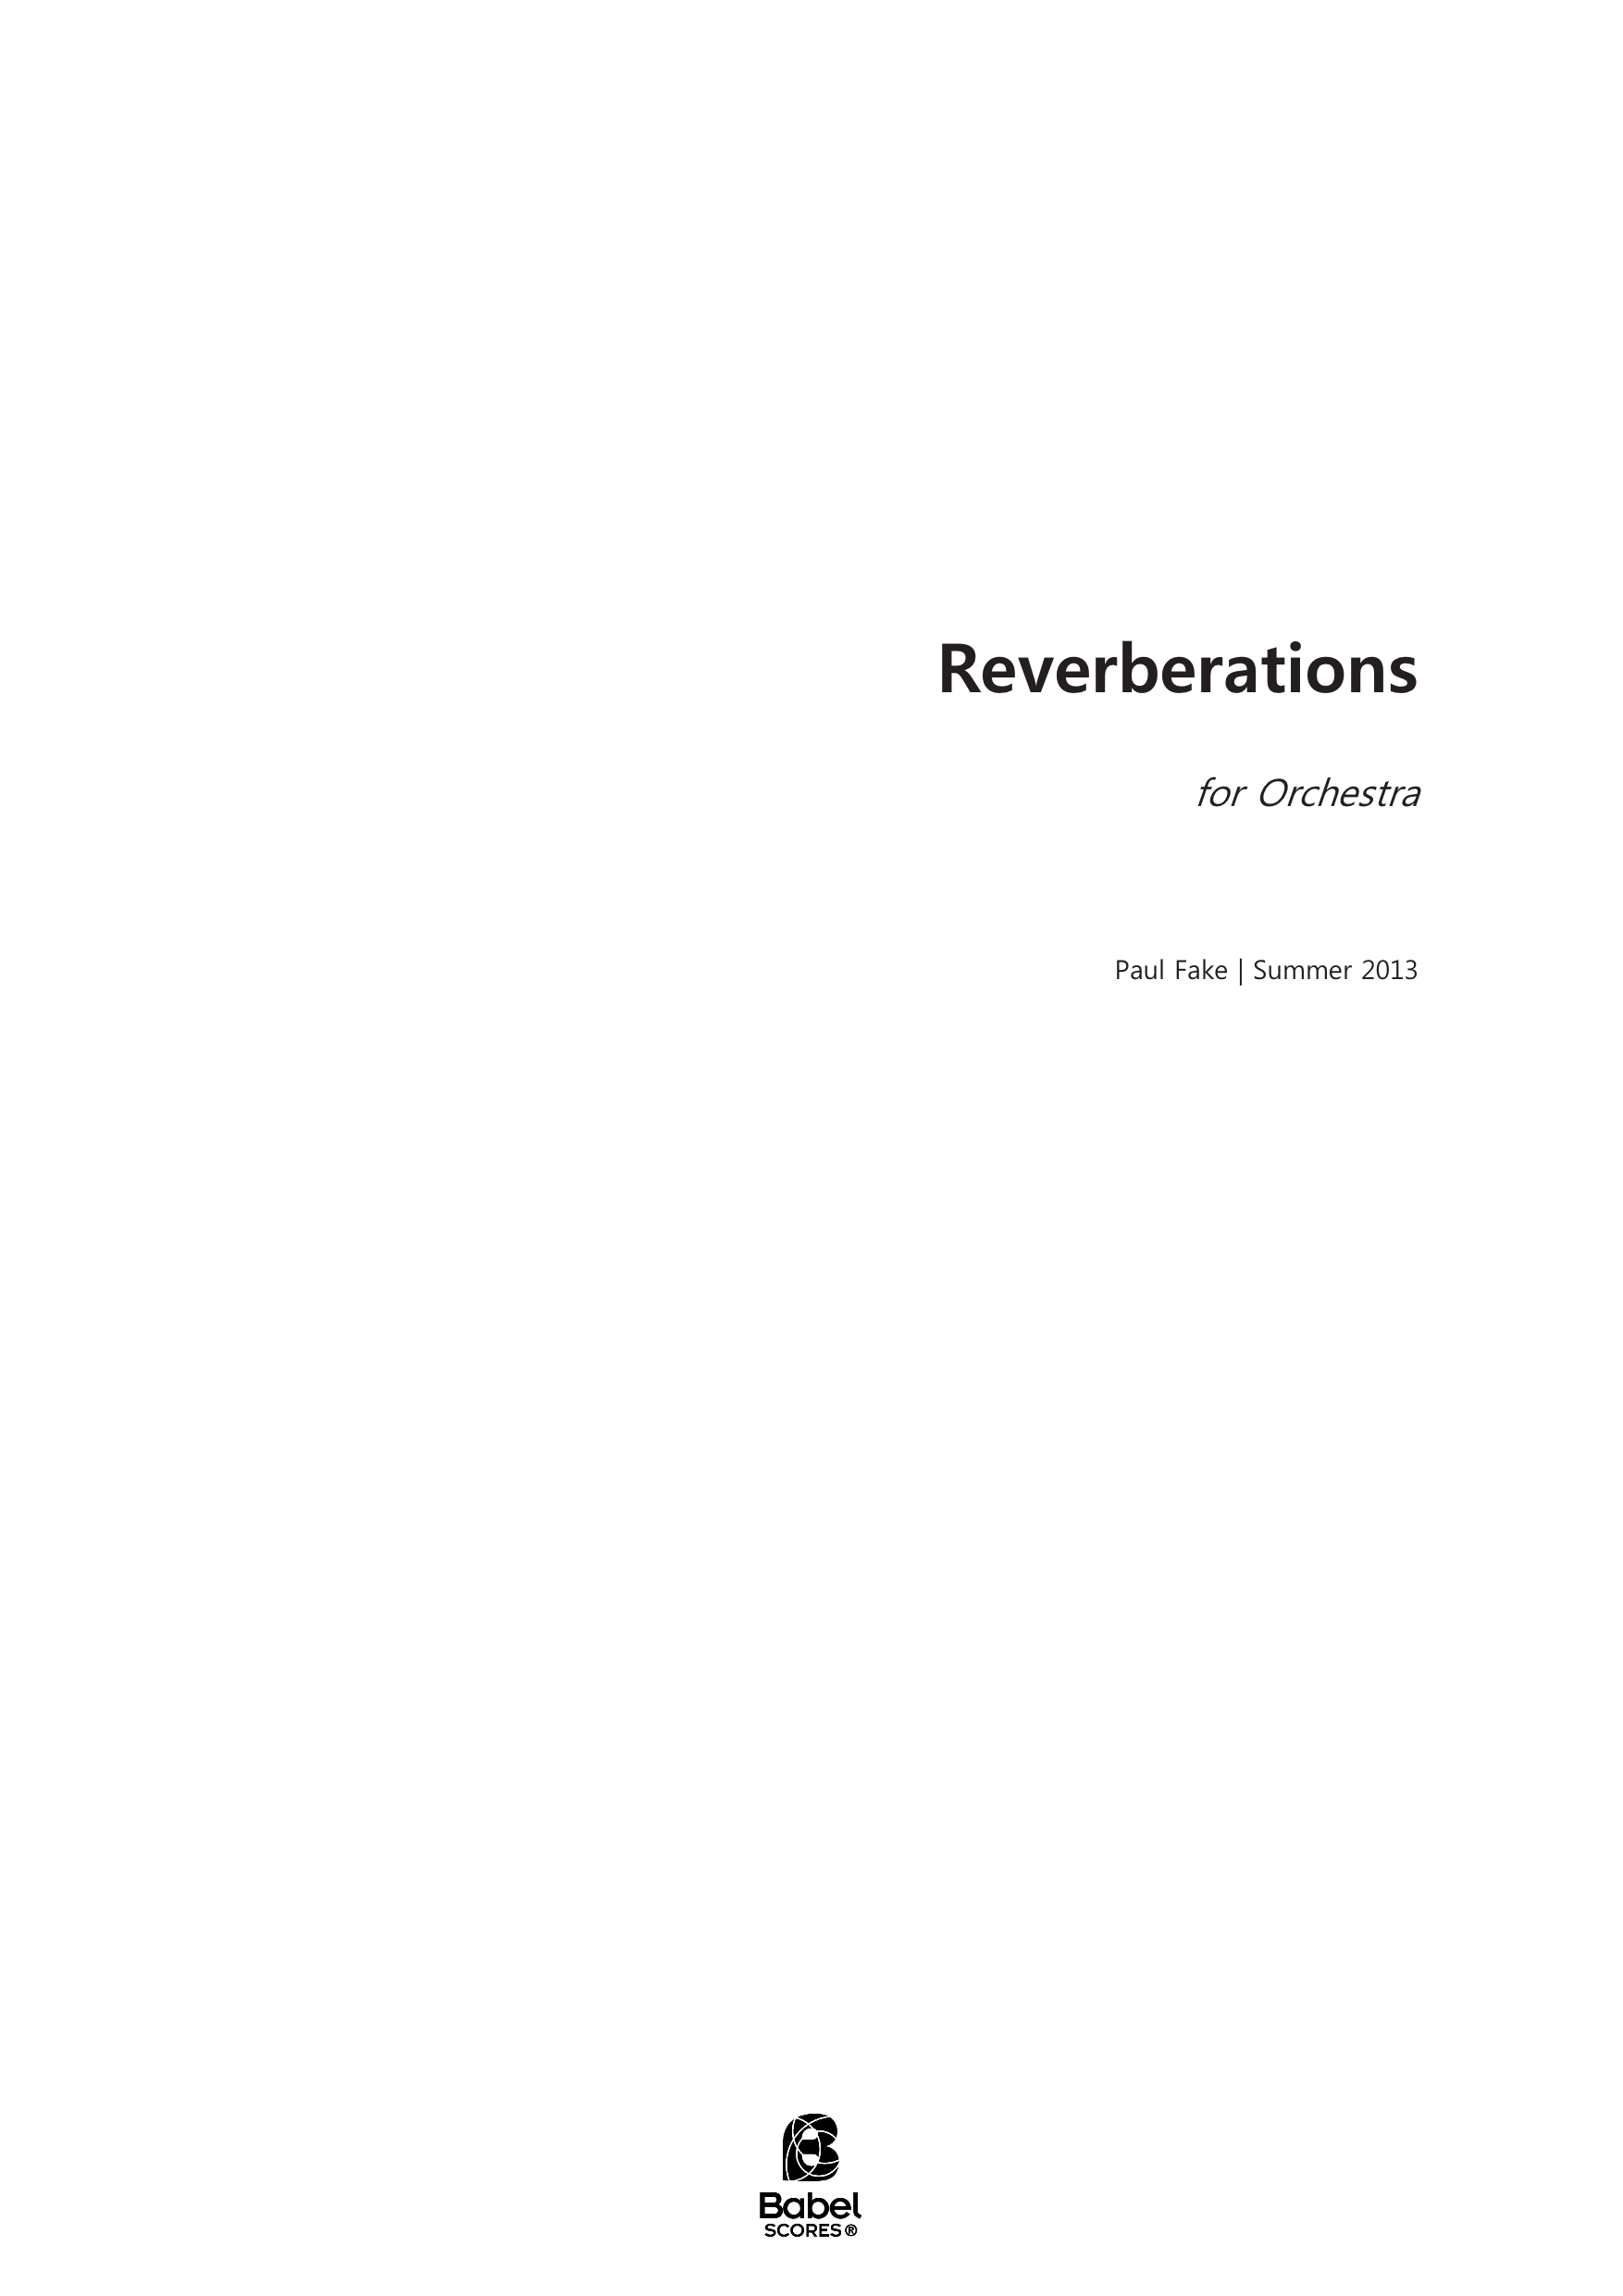 Reverberations A3 z 2 1 349